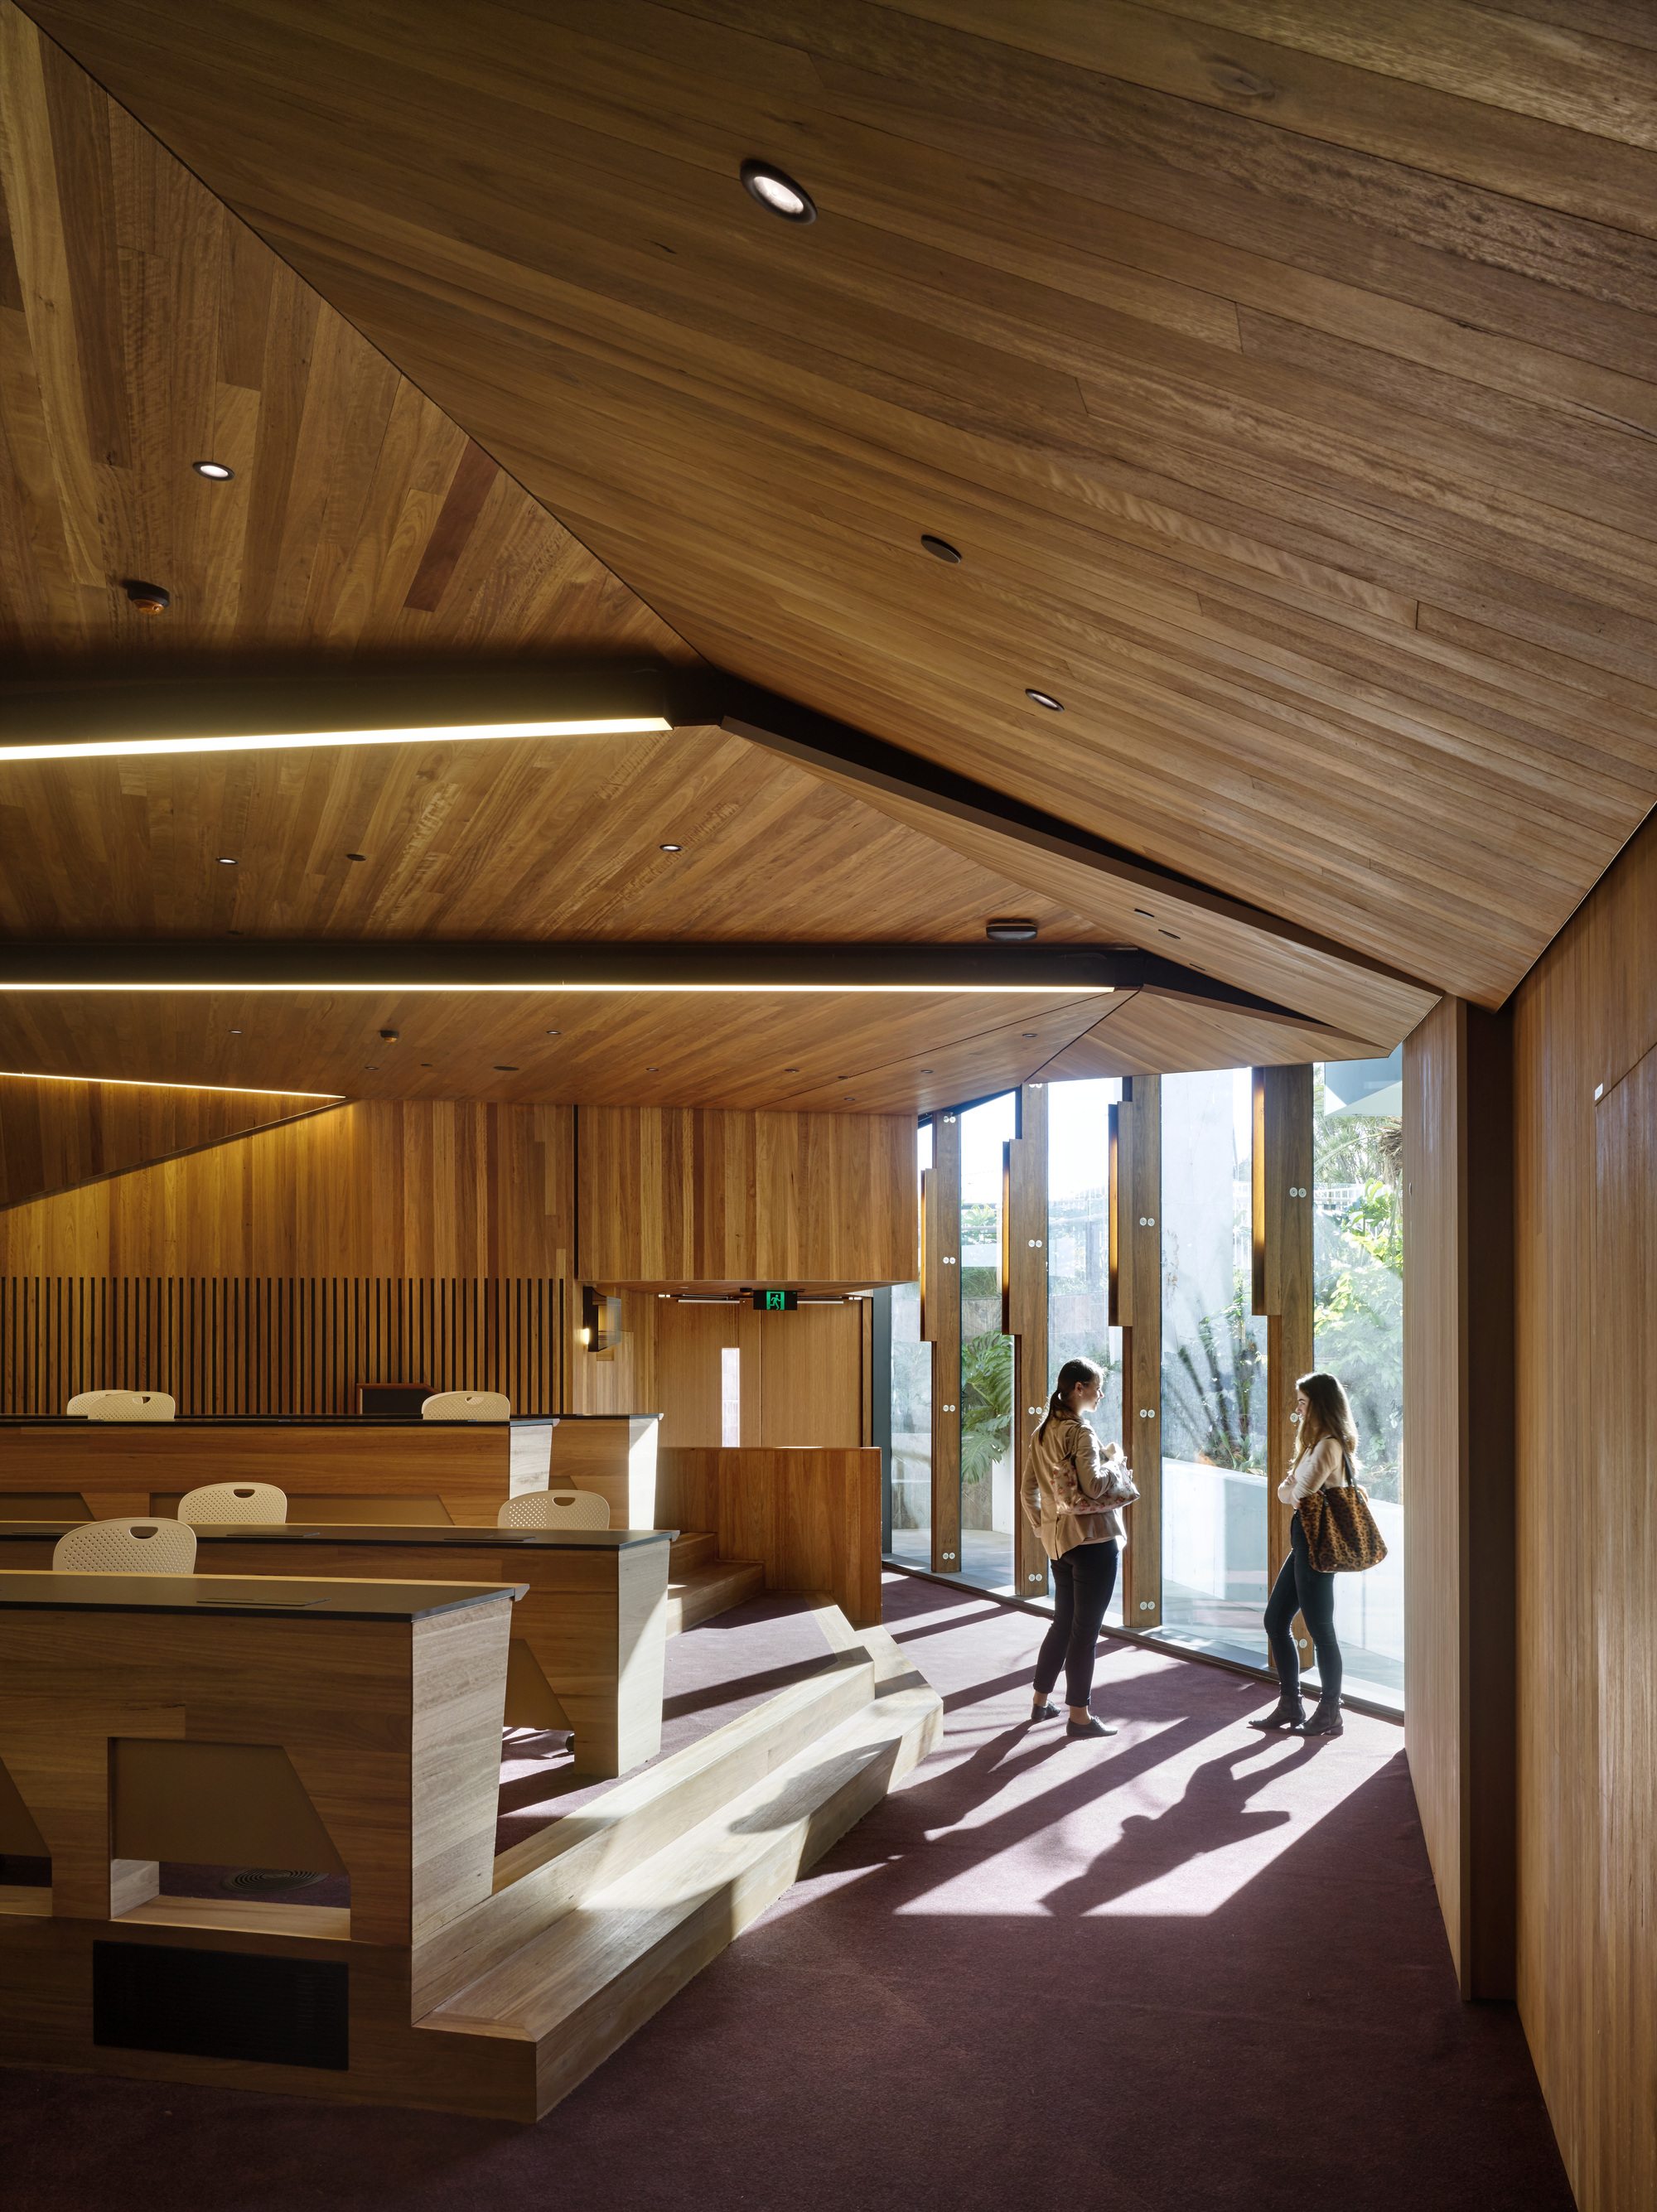 The University Of Queensland Oral Health Centre Cox Rayner Architects Hames Sharley